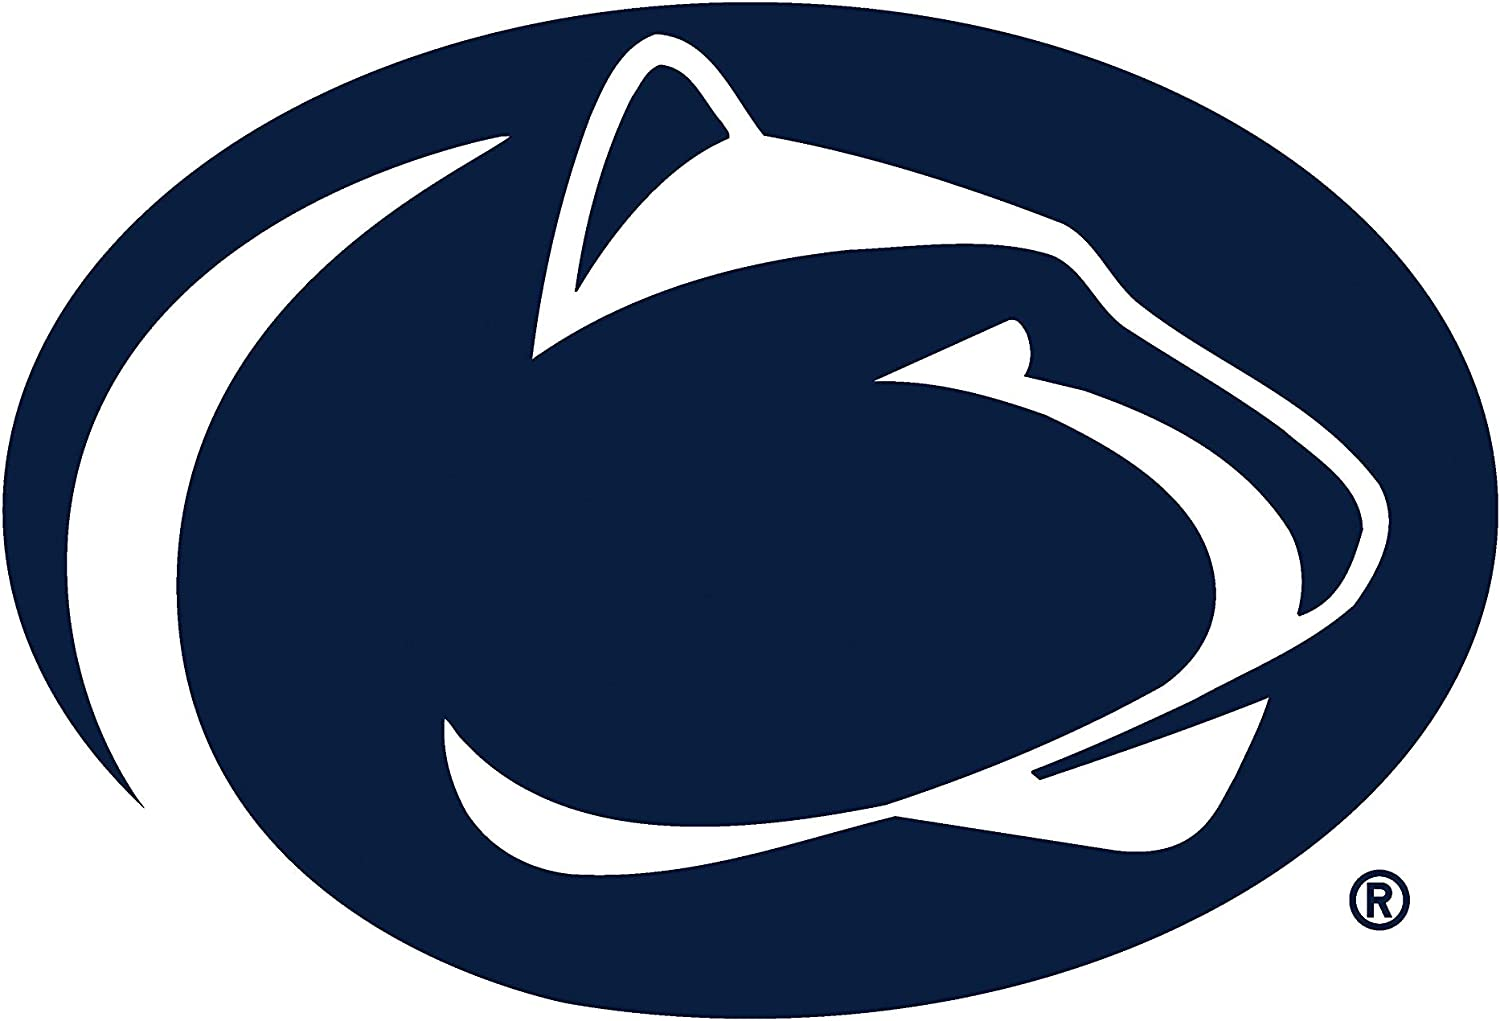 S Venley NCAA Penn State Nittany Lions 03PSU 002 D.S.4201